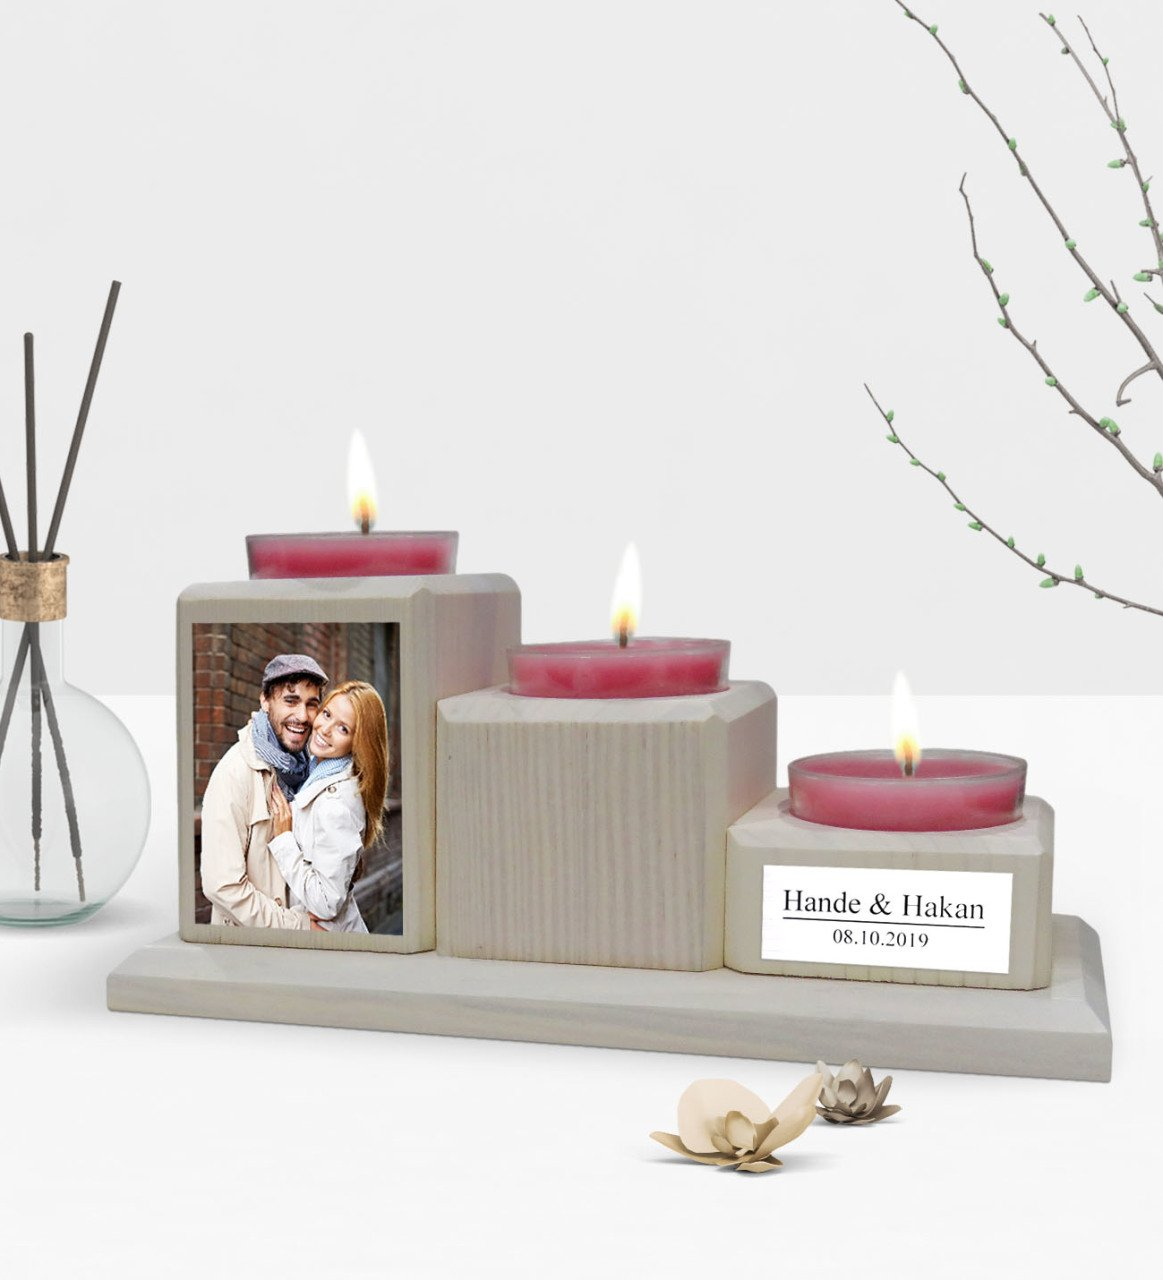 Personalized Is Photo Decorative 3 Layer Natural Wooden Candle Holder-Vintage White